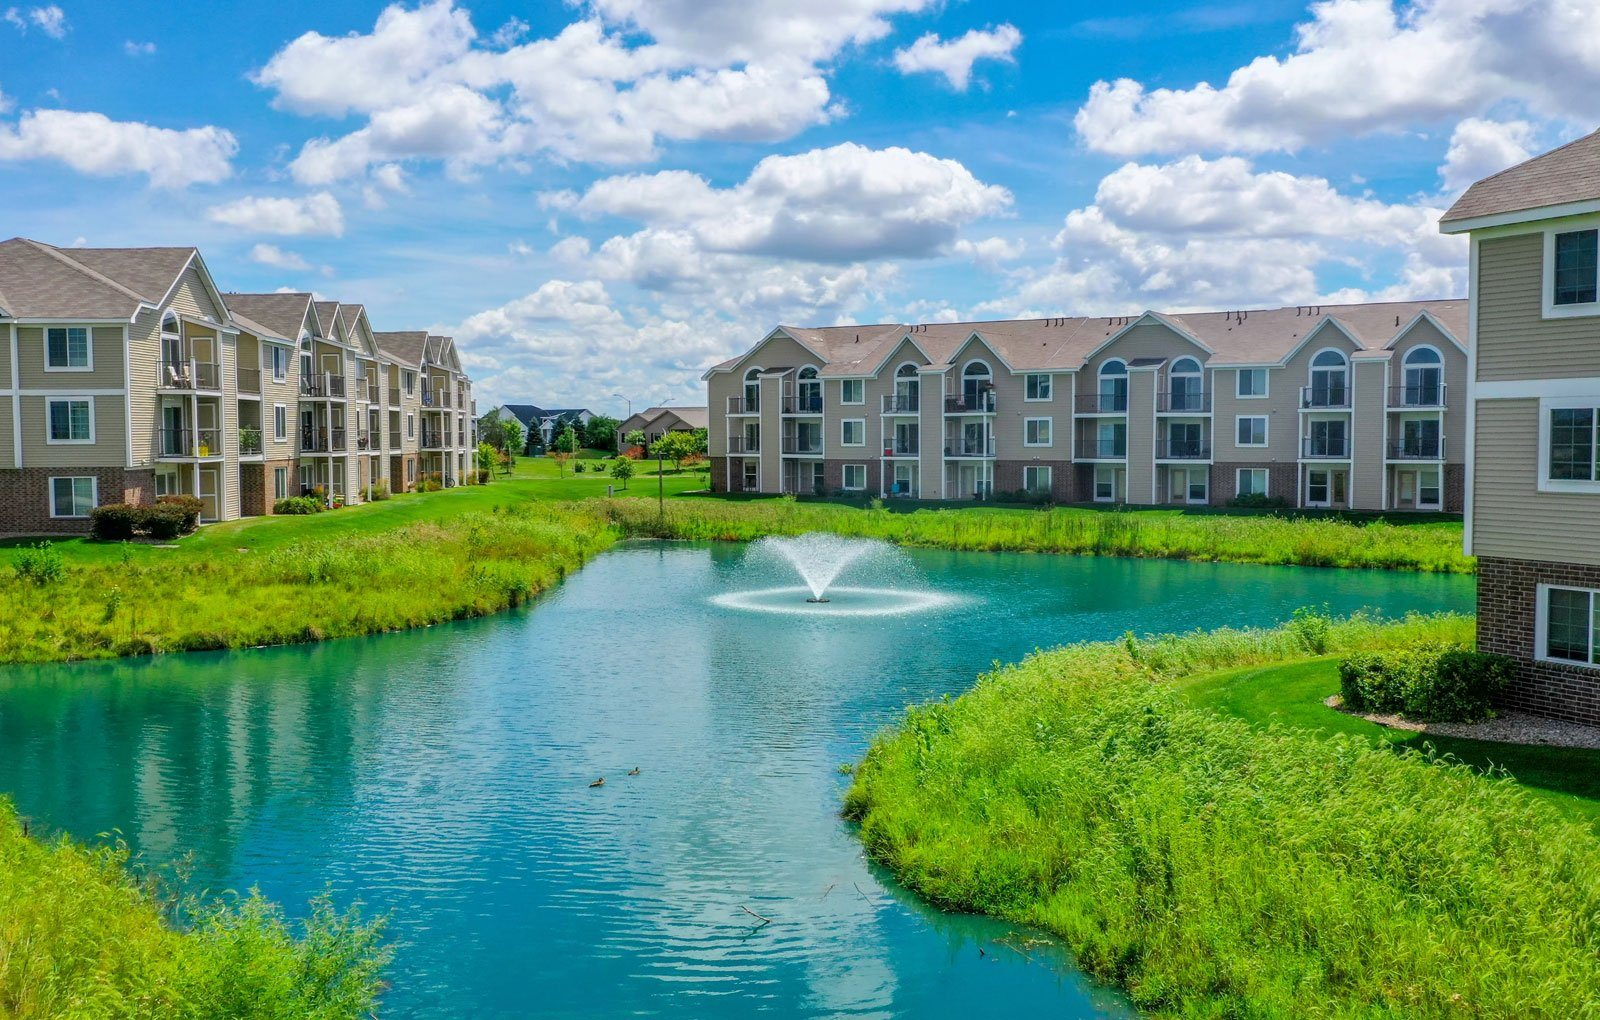 Stunning Community Lake and Lakeside Apartments at Fieldstream Apartment Homes, Iowa